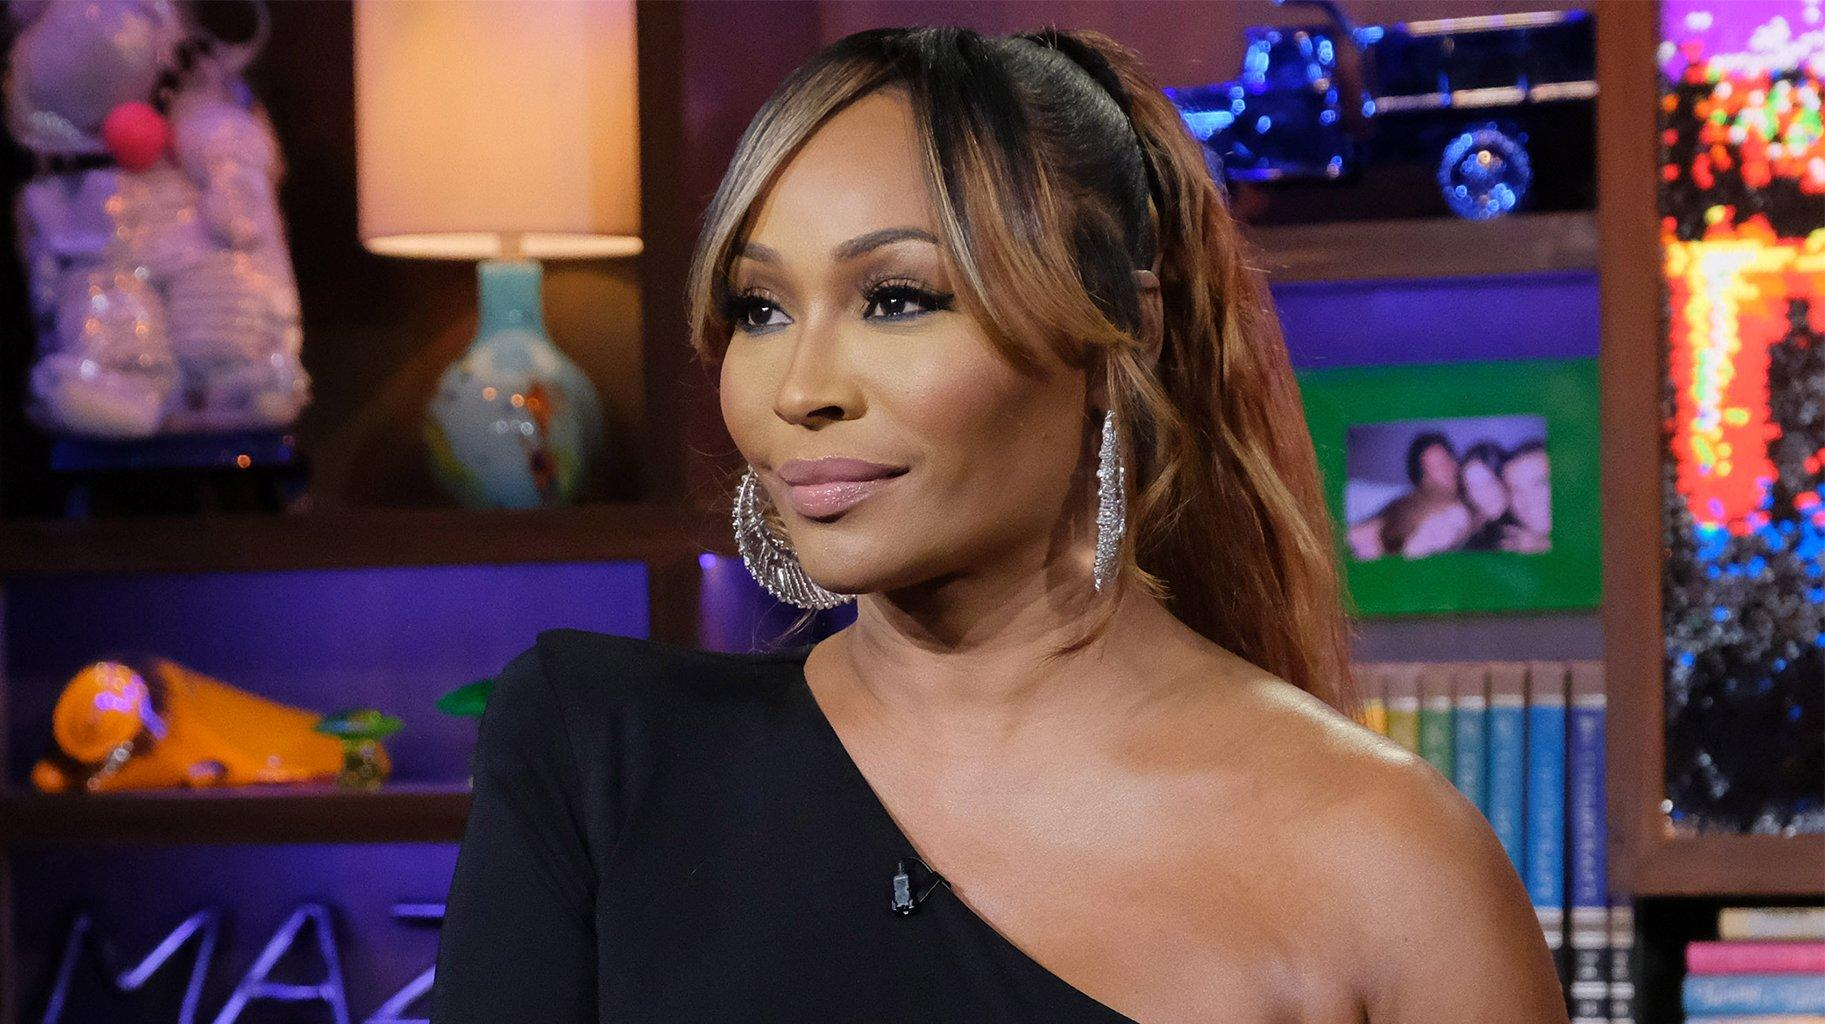 Some Of Cynthia Bailey's Fans Warn Her About Mike Hill - See What They Have To Say